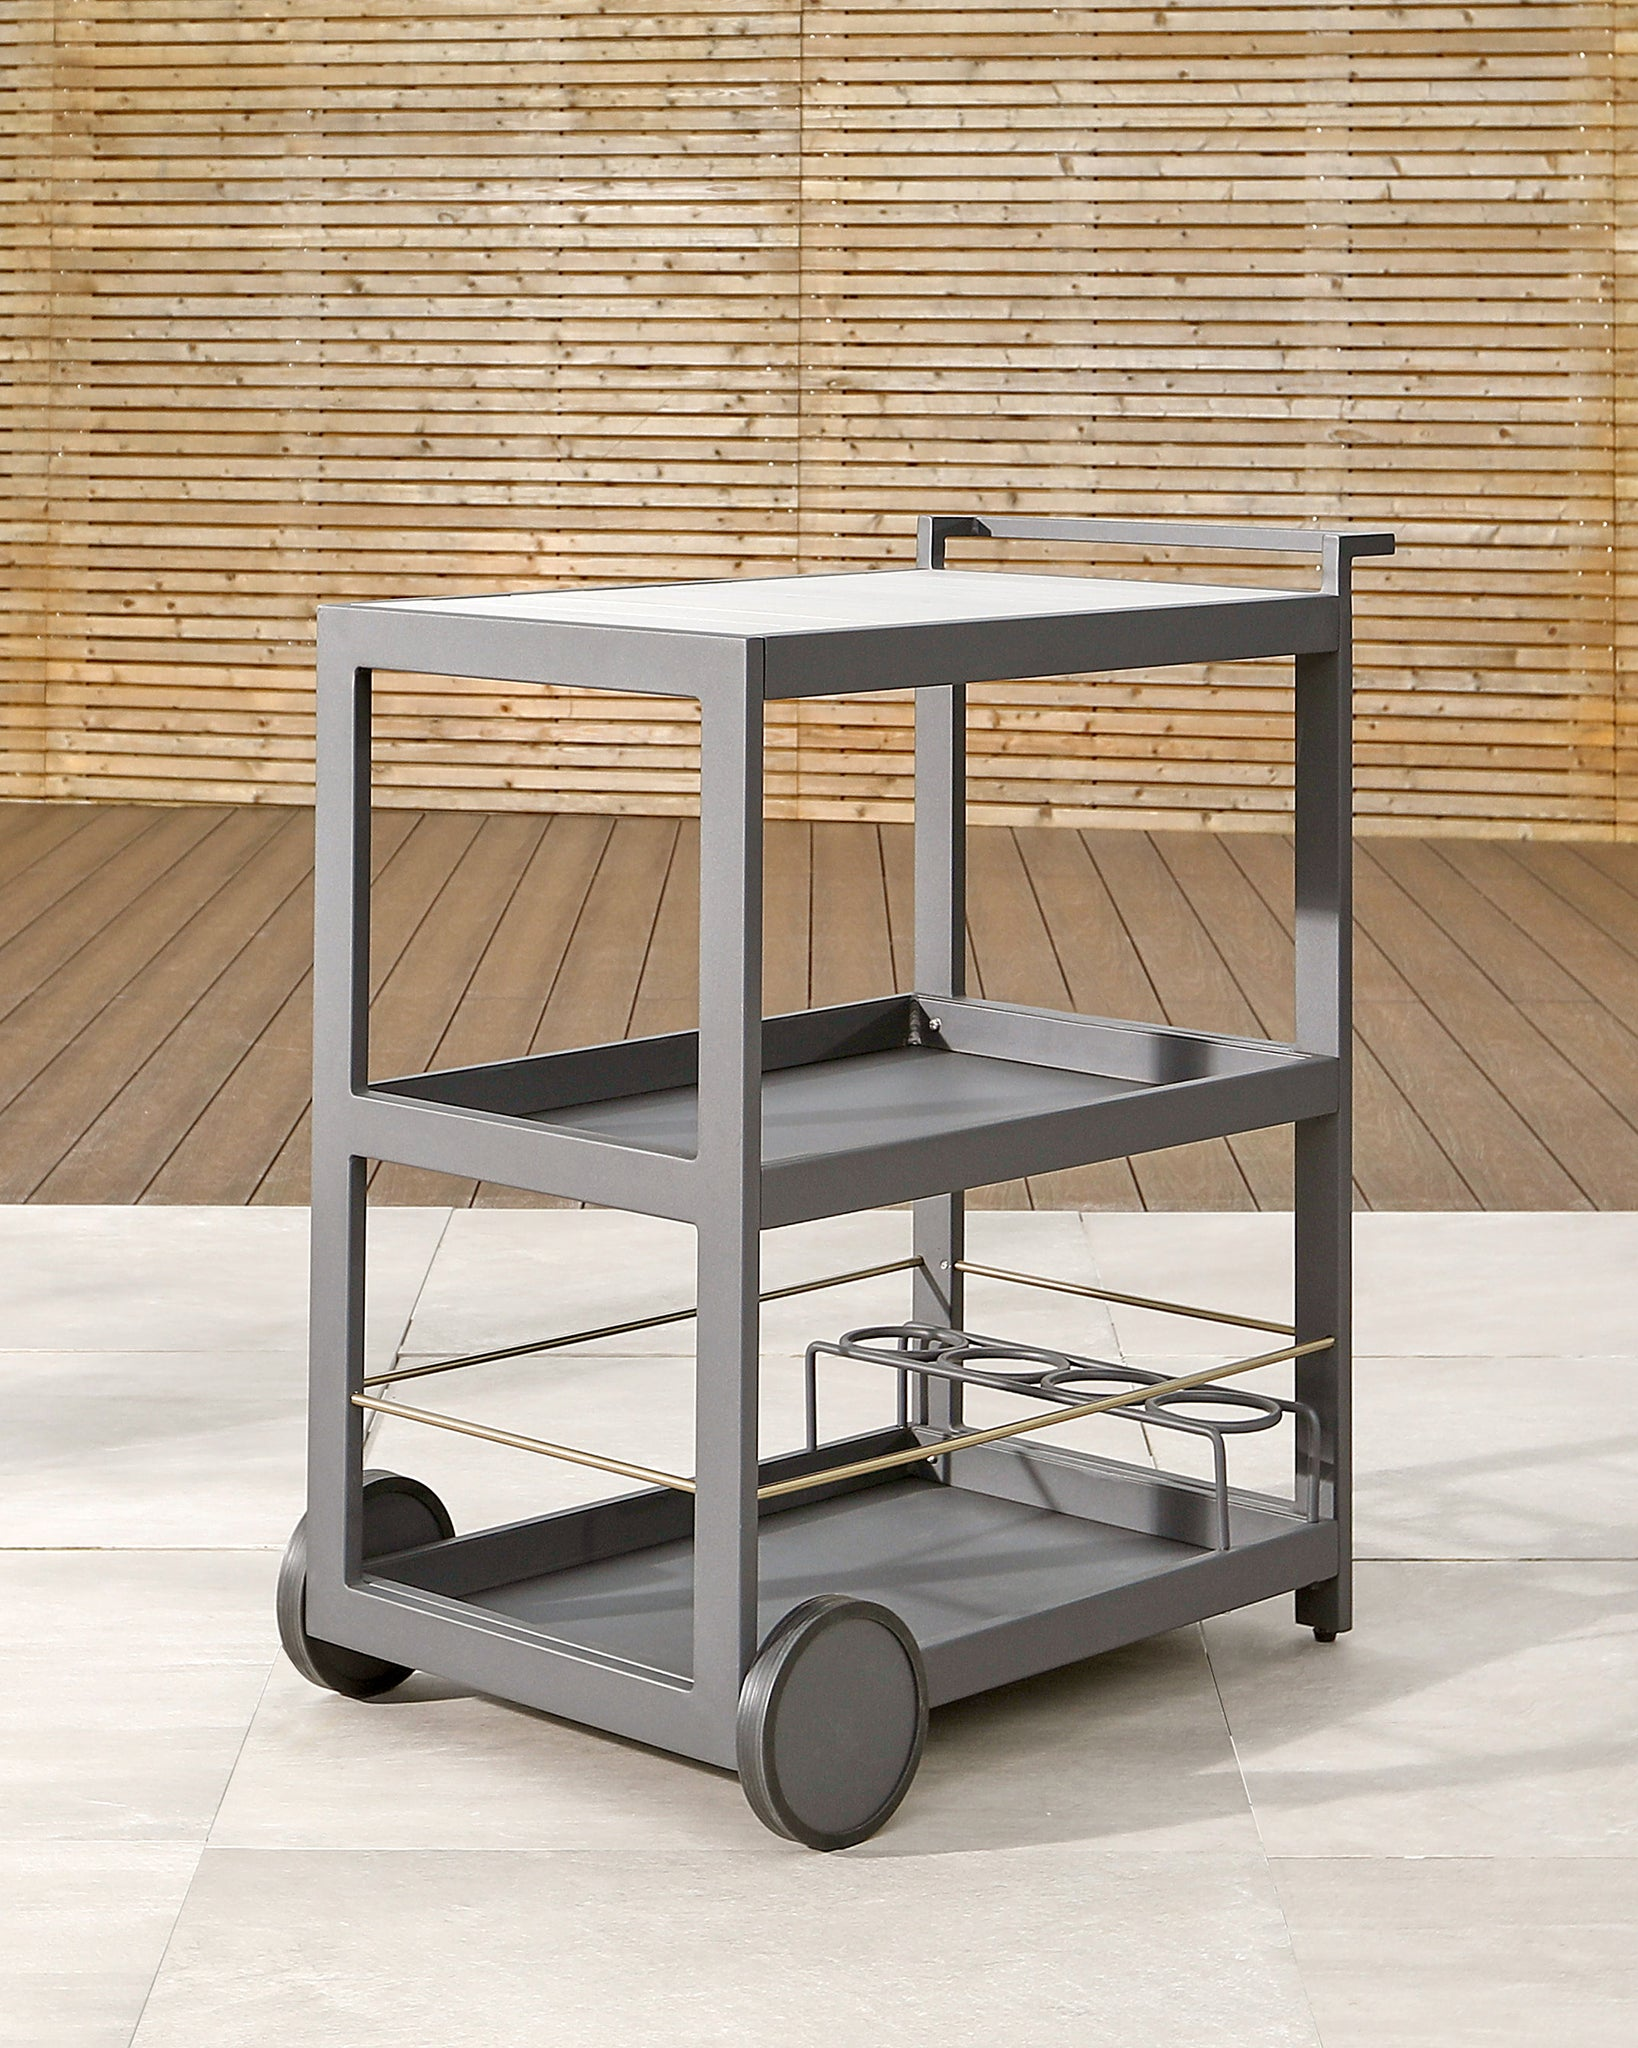 Palm Dark Grey Aluminium And Wood Garden Drinks Trolley